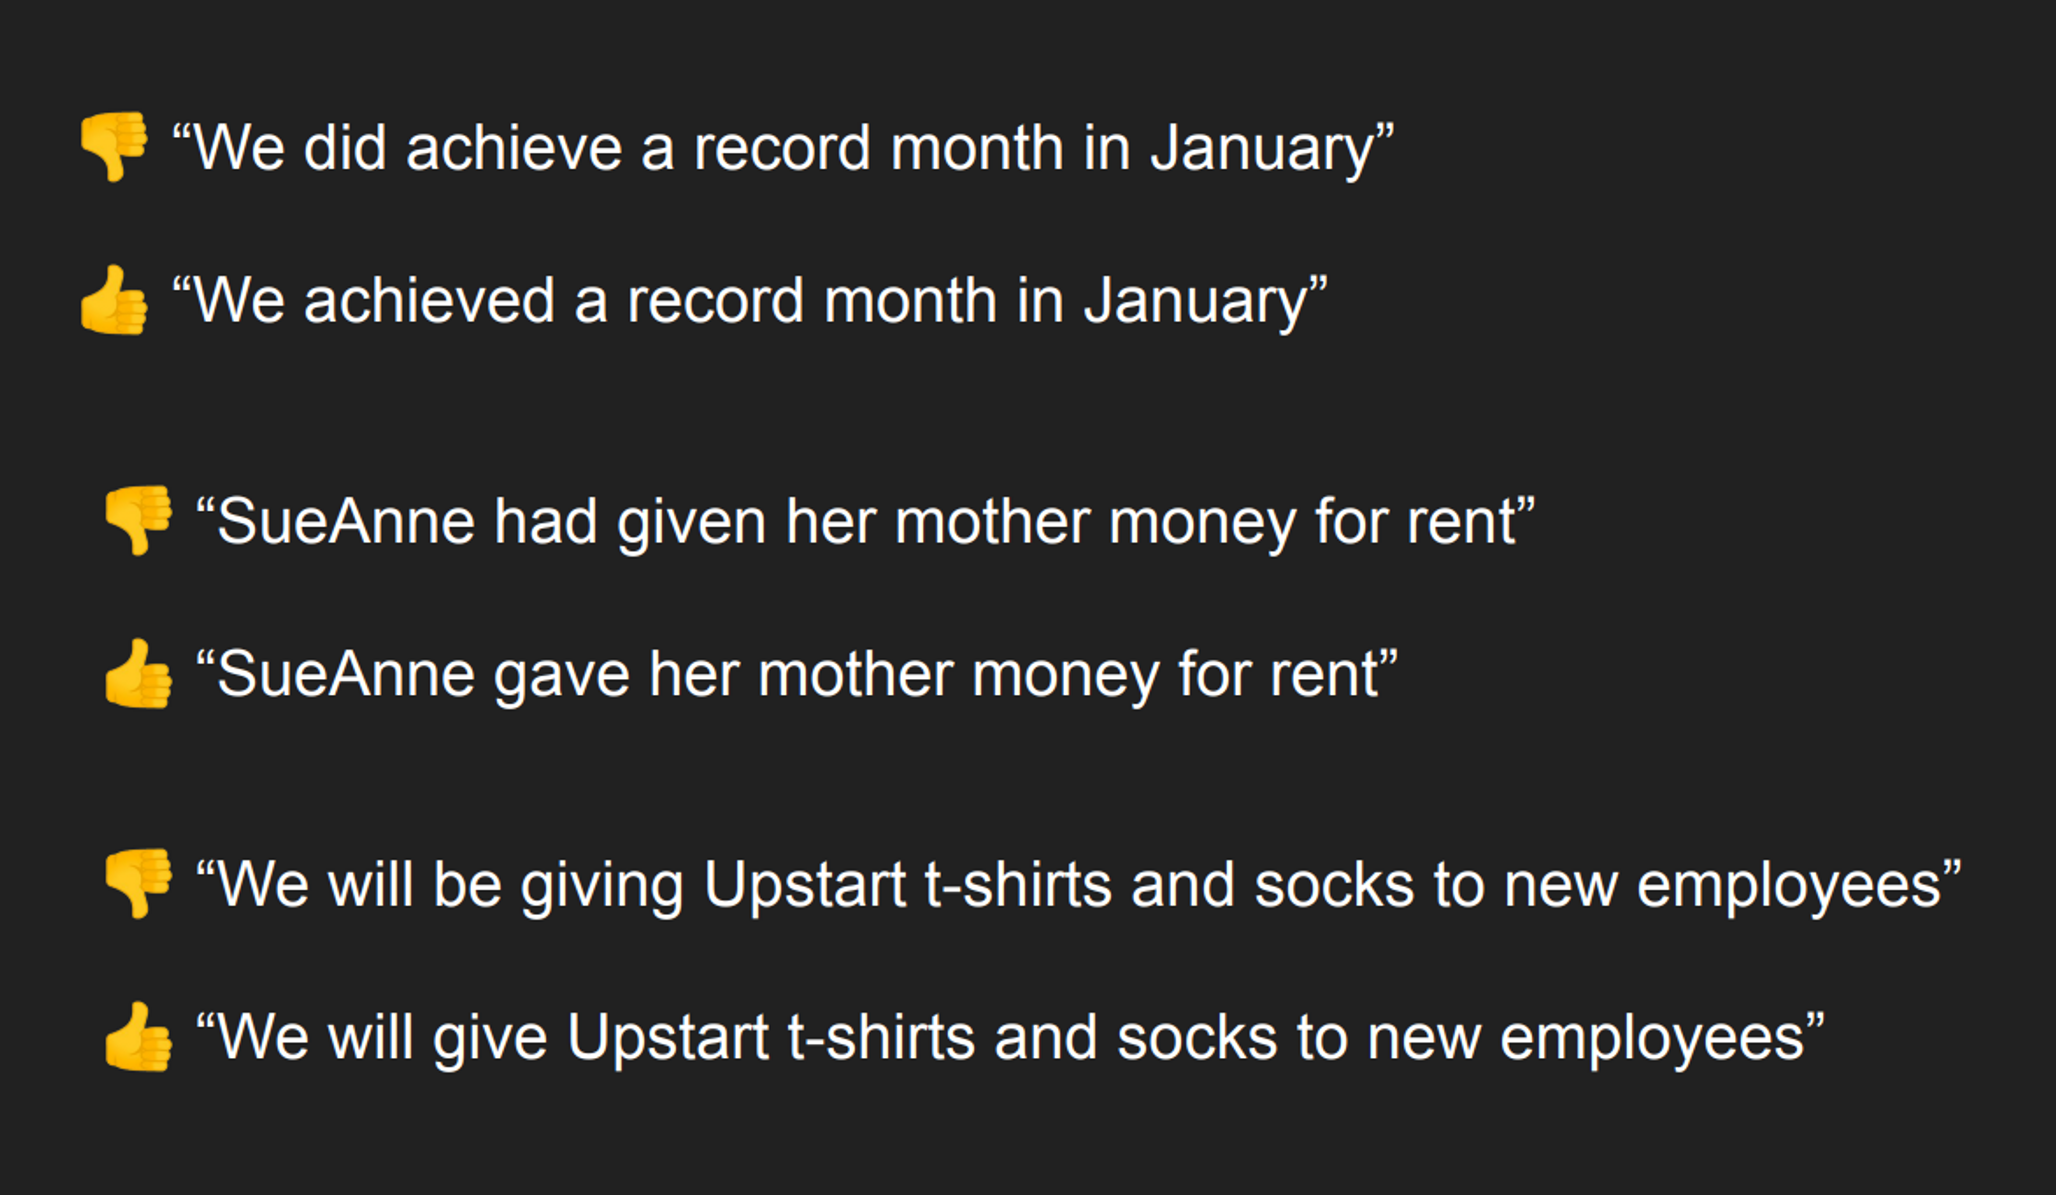 "We did achieve a record month in January"" 👍 ""We achieved a record month in January"" 👎 ""SueAnne had given her mother money for rent"" 👍 ""SueAnne gave her mother money for rent"" 👎 ""We will be giving Upstart t-shirts and socks to new employees"" 👍 ""We will give Upstart t-shirts and socks to new employees"""